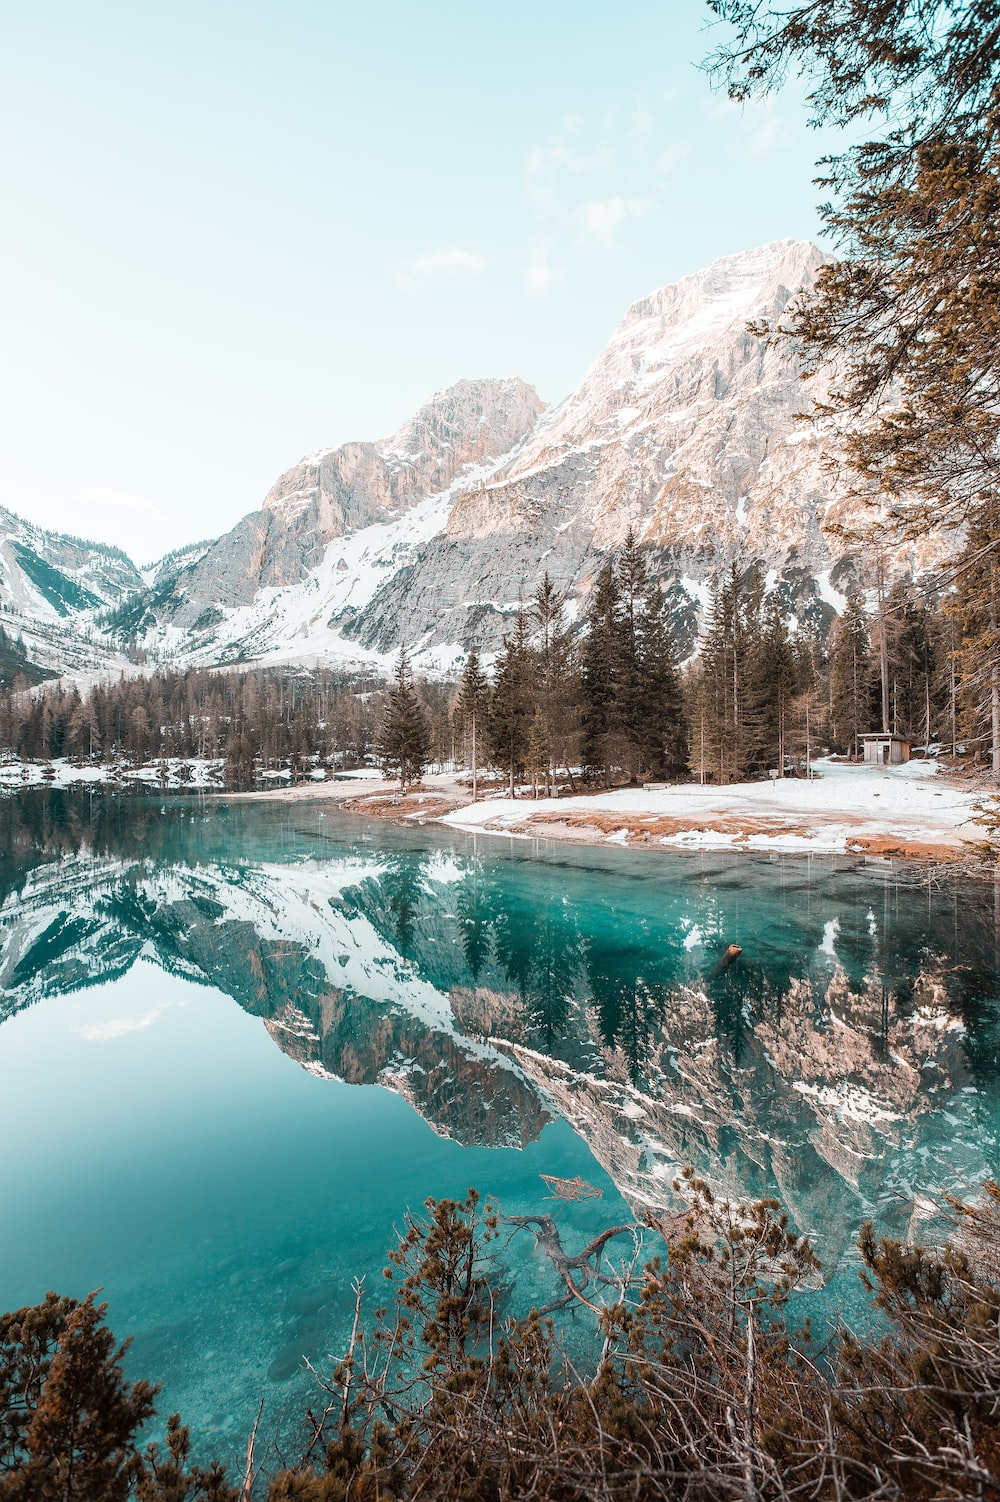 lake surrounded by trees and snow covered mountains during daytime